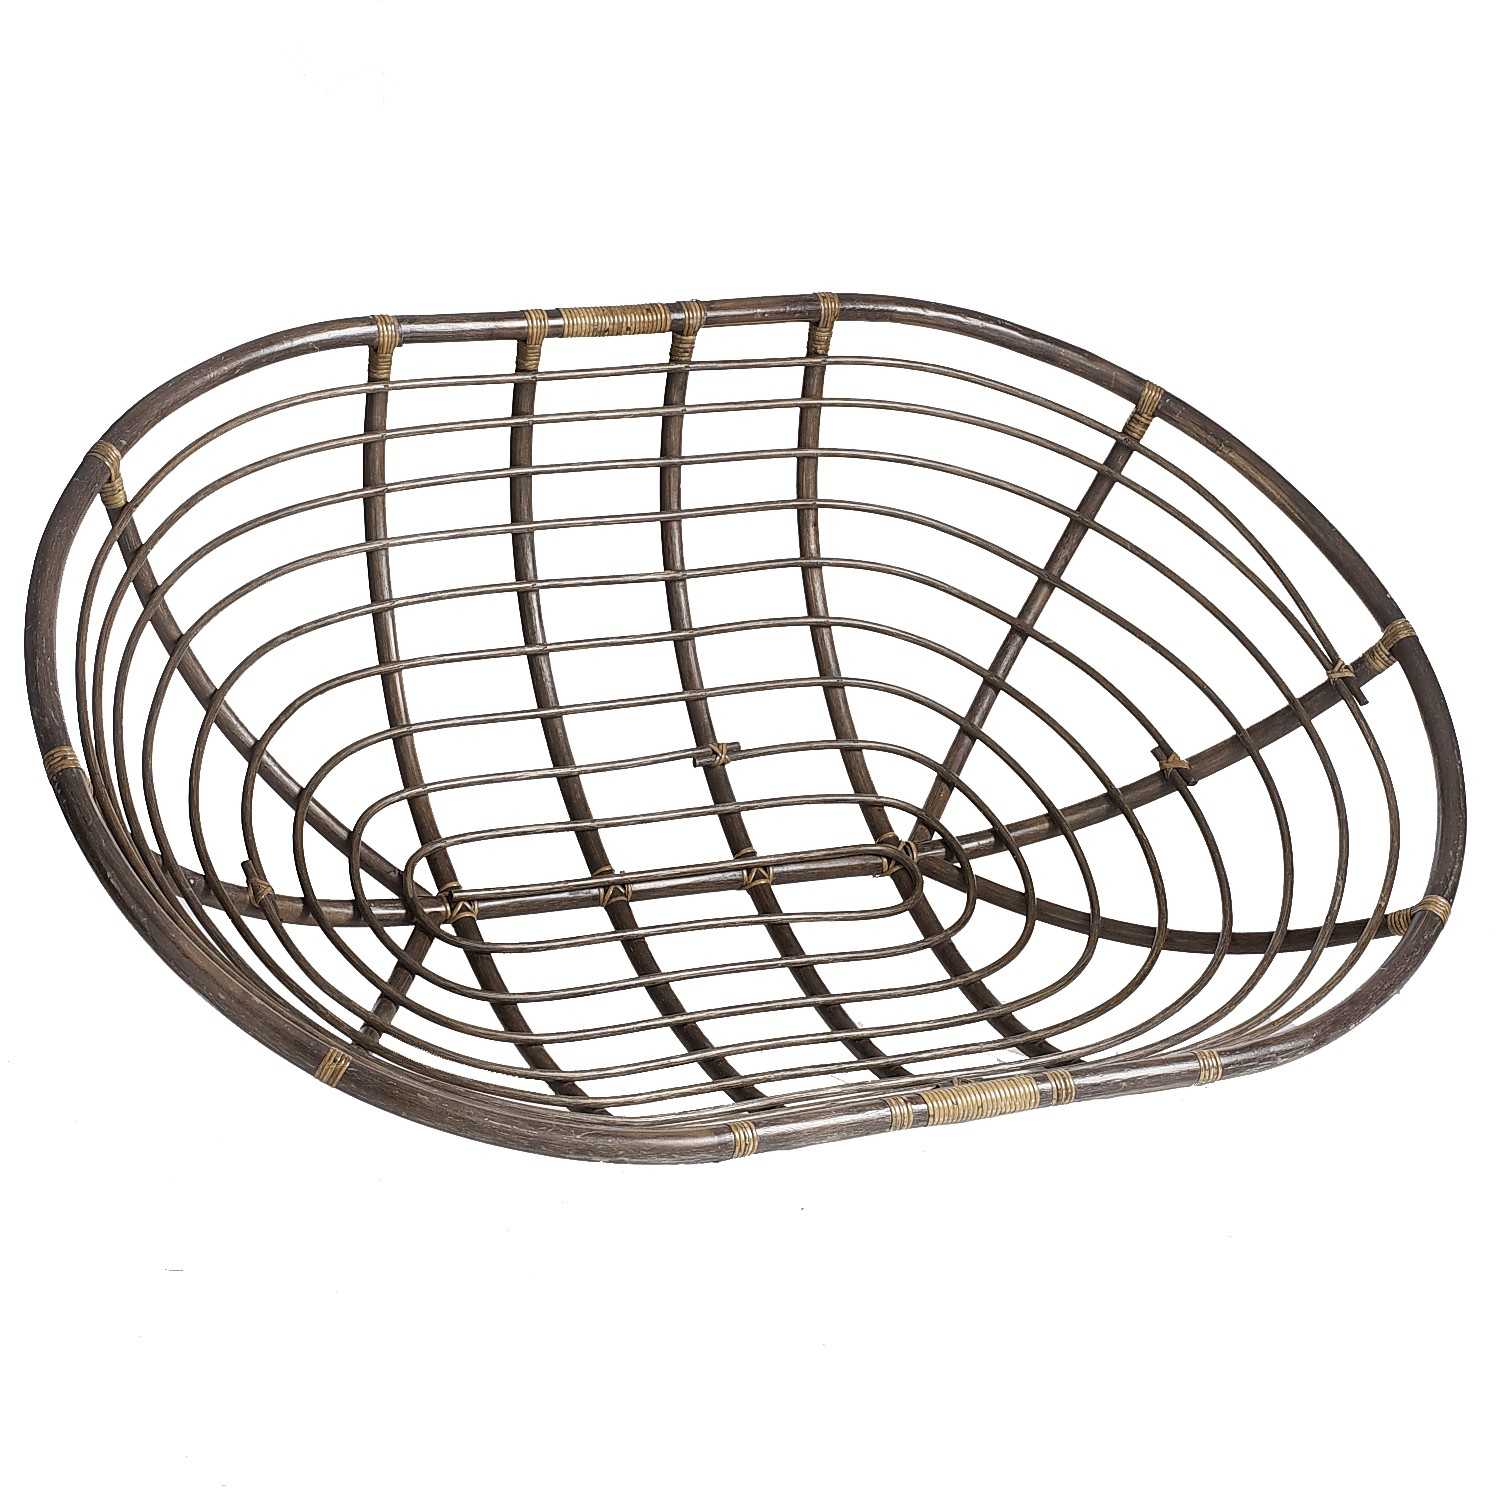 Papasan Swivel Rocker Chair Cushion | Wicker Glider | Rattan Swivel Rocker